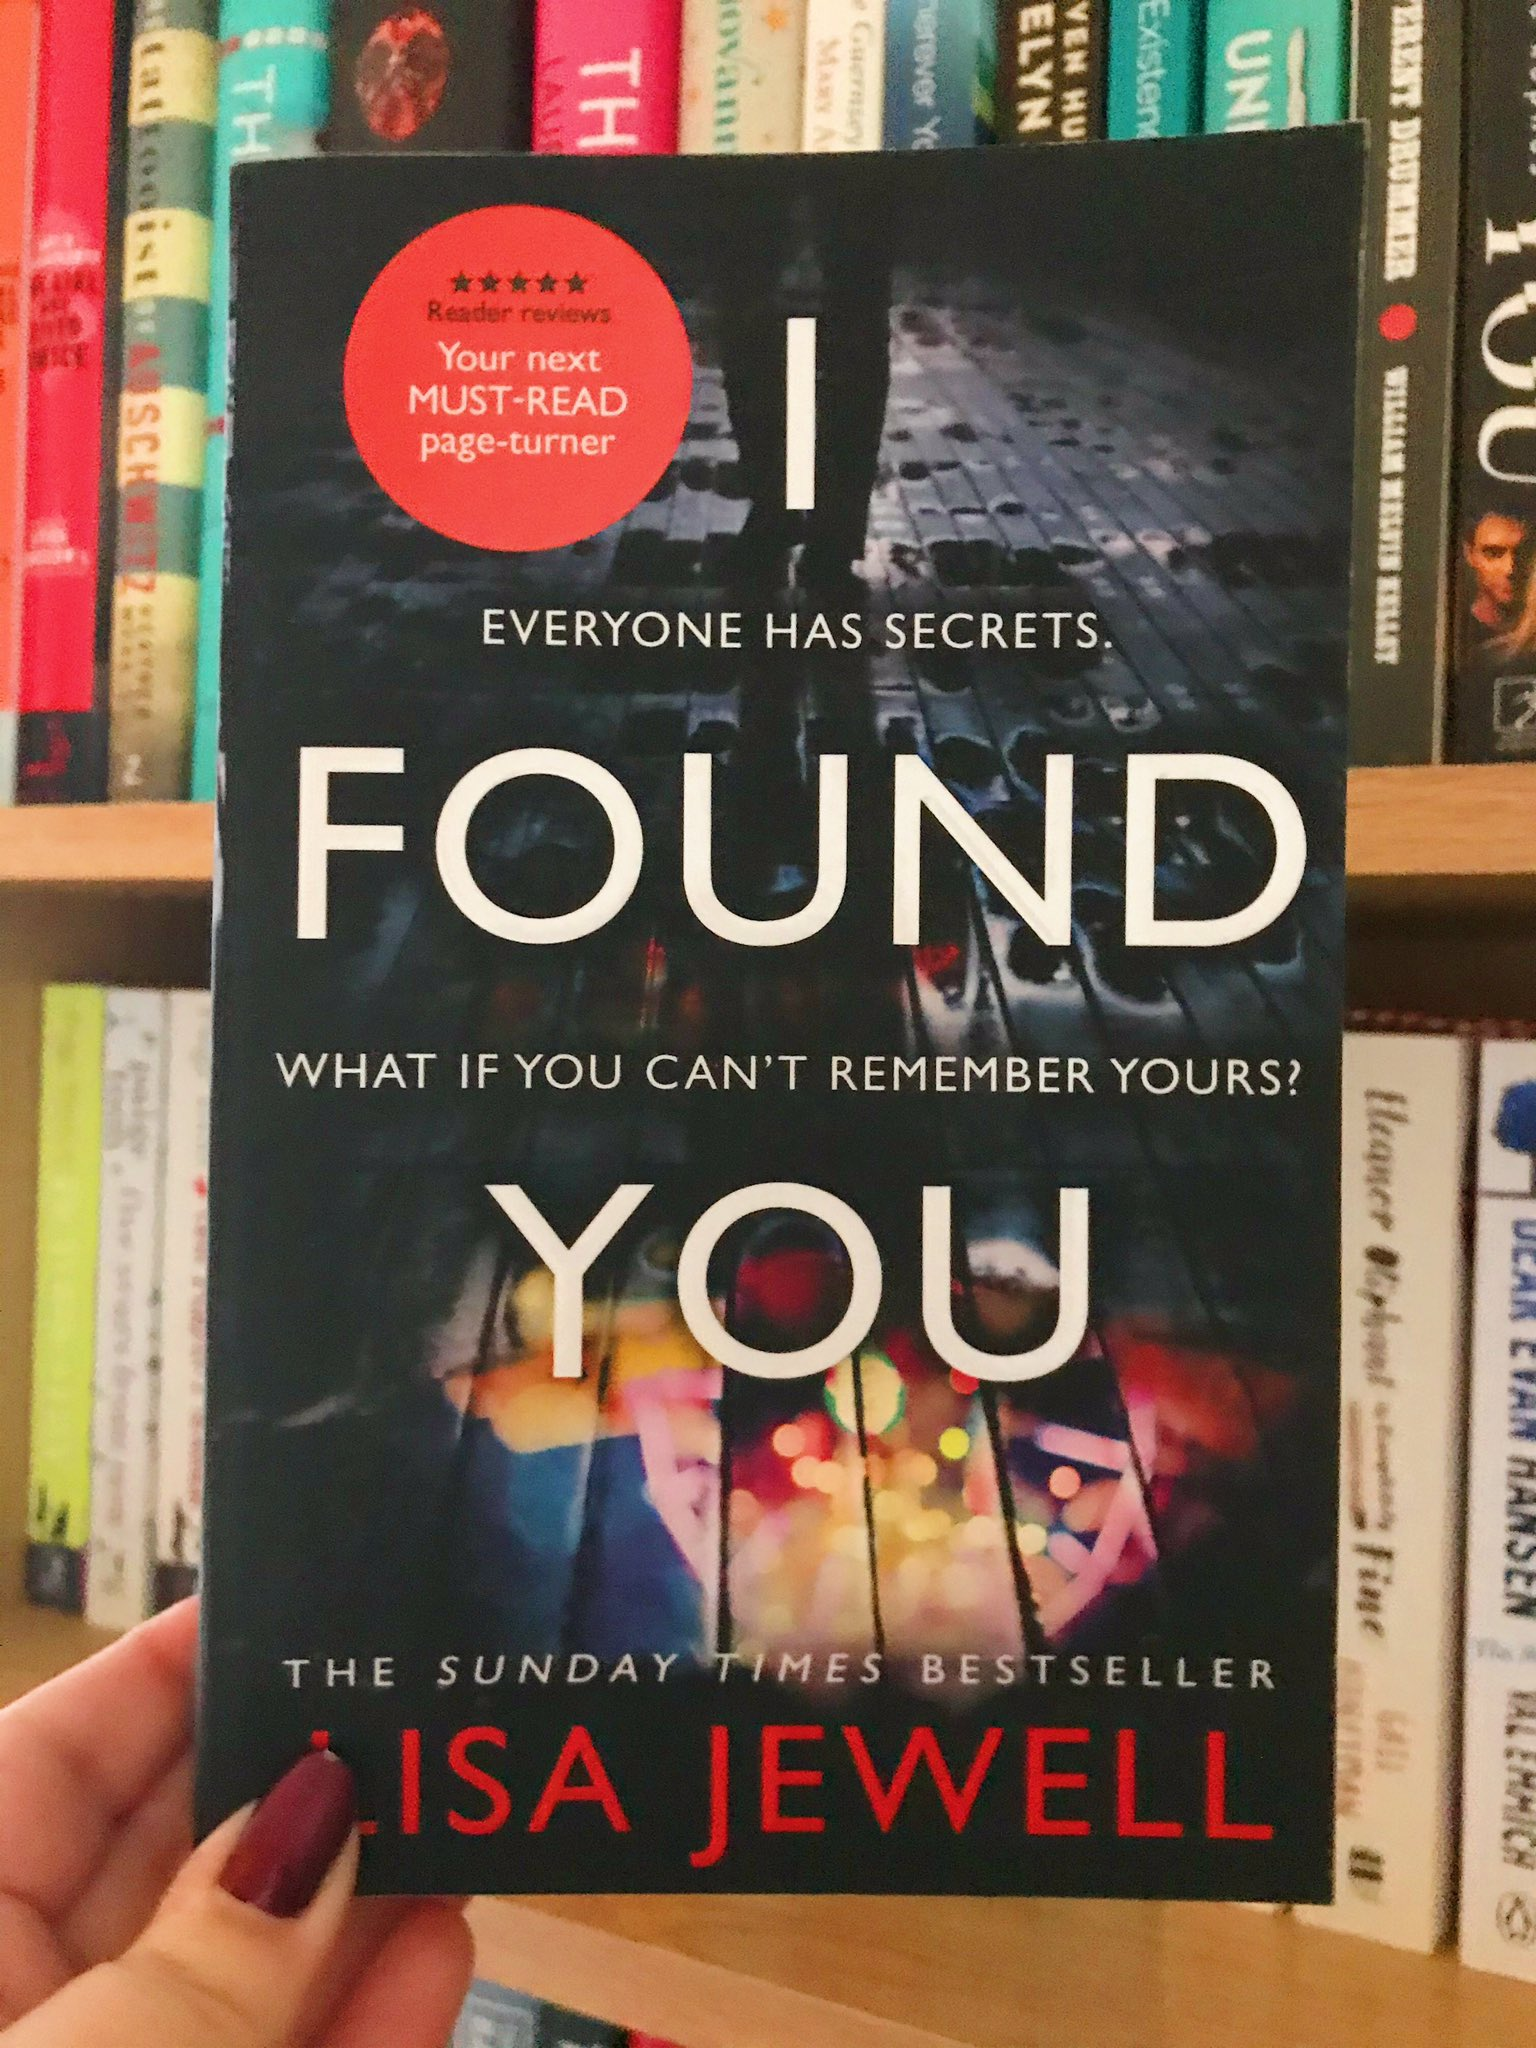 I Found You by Lisa Jewell book held up in front of bookshelf